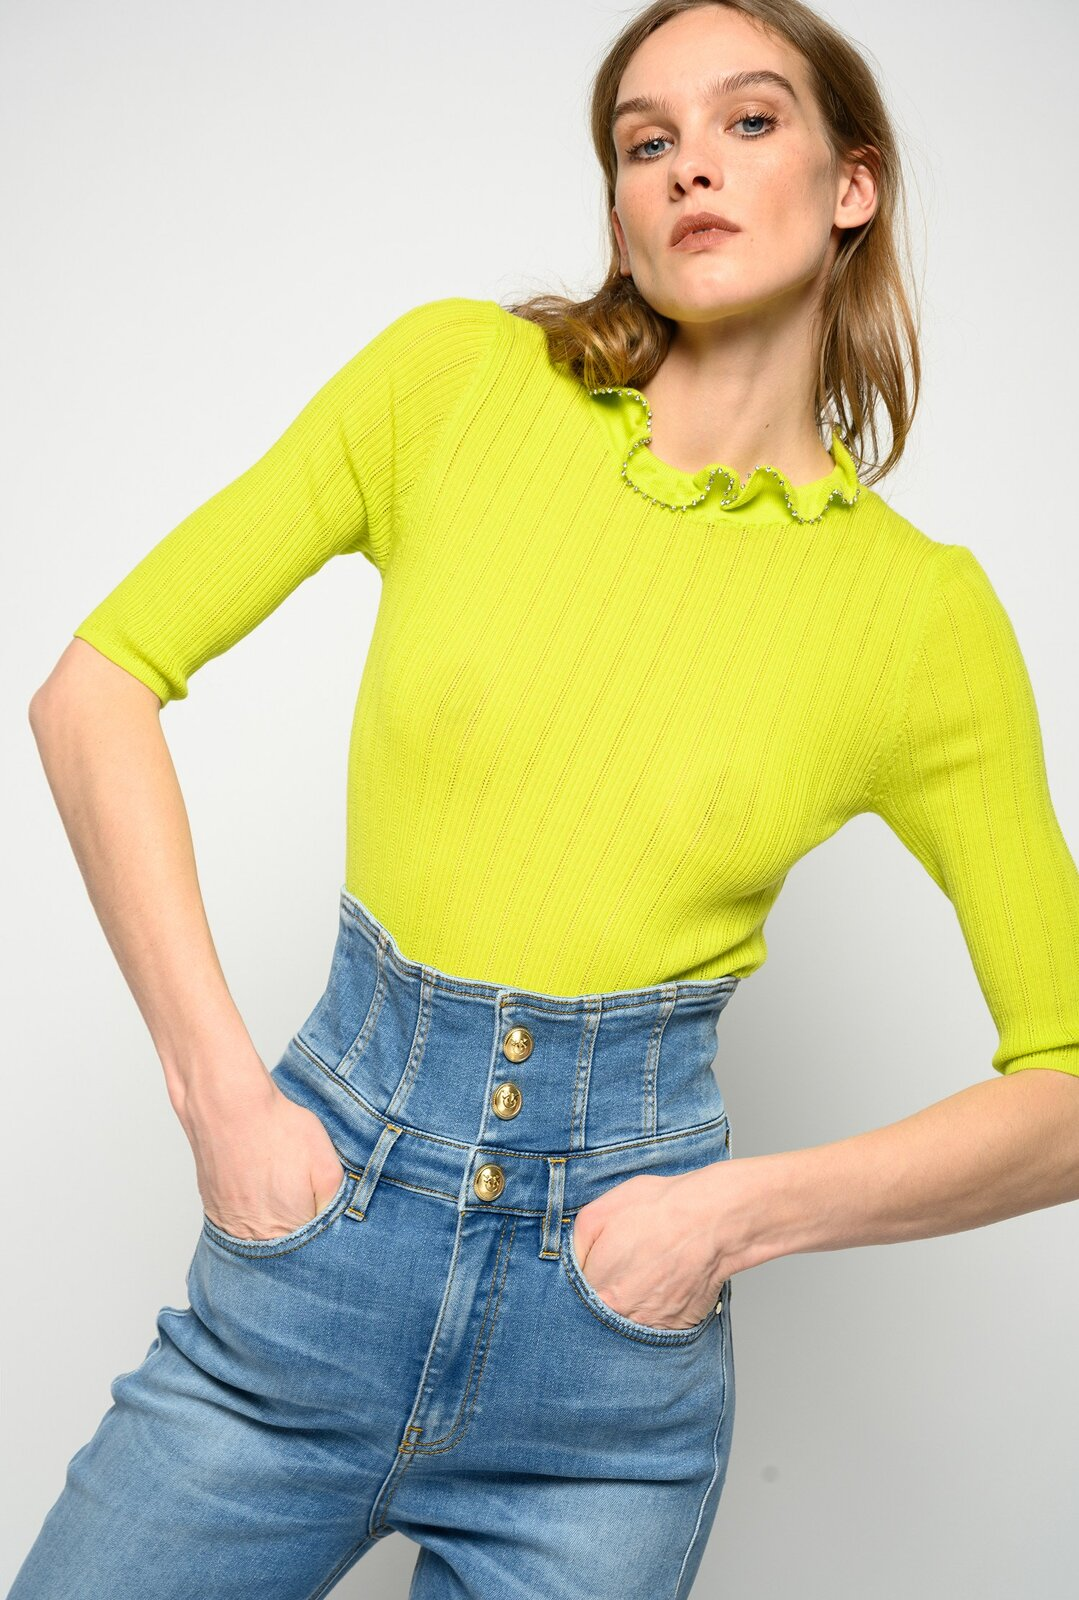 Sweater With Ruched Collar And Strass - Pinko